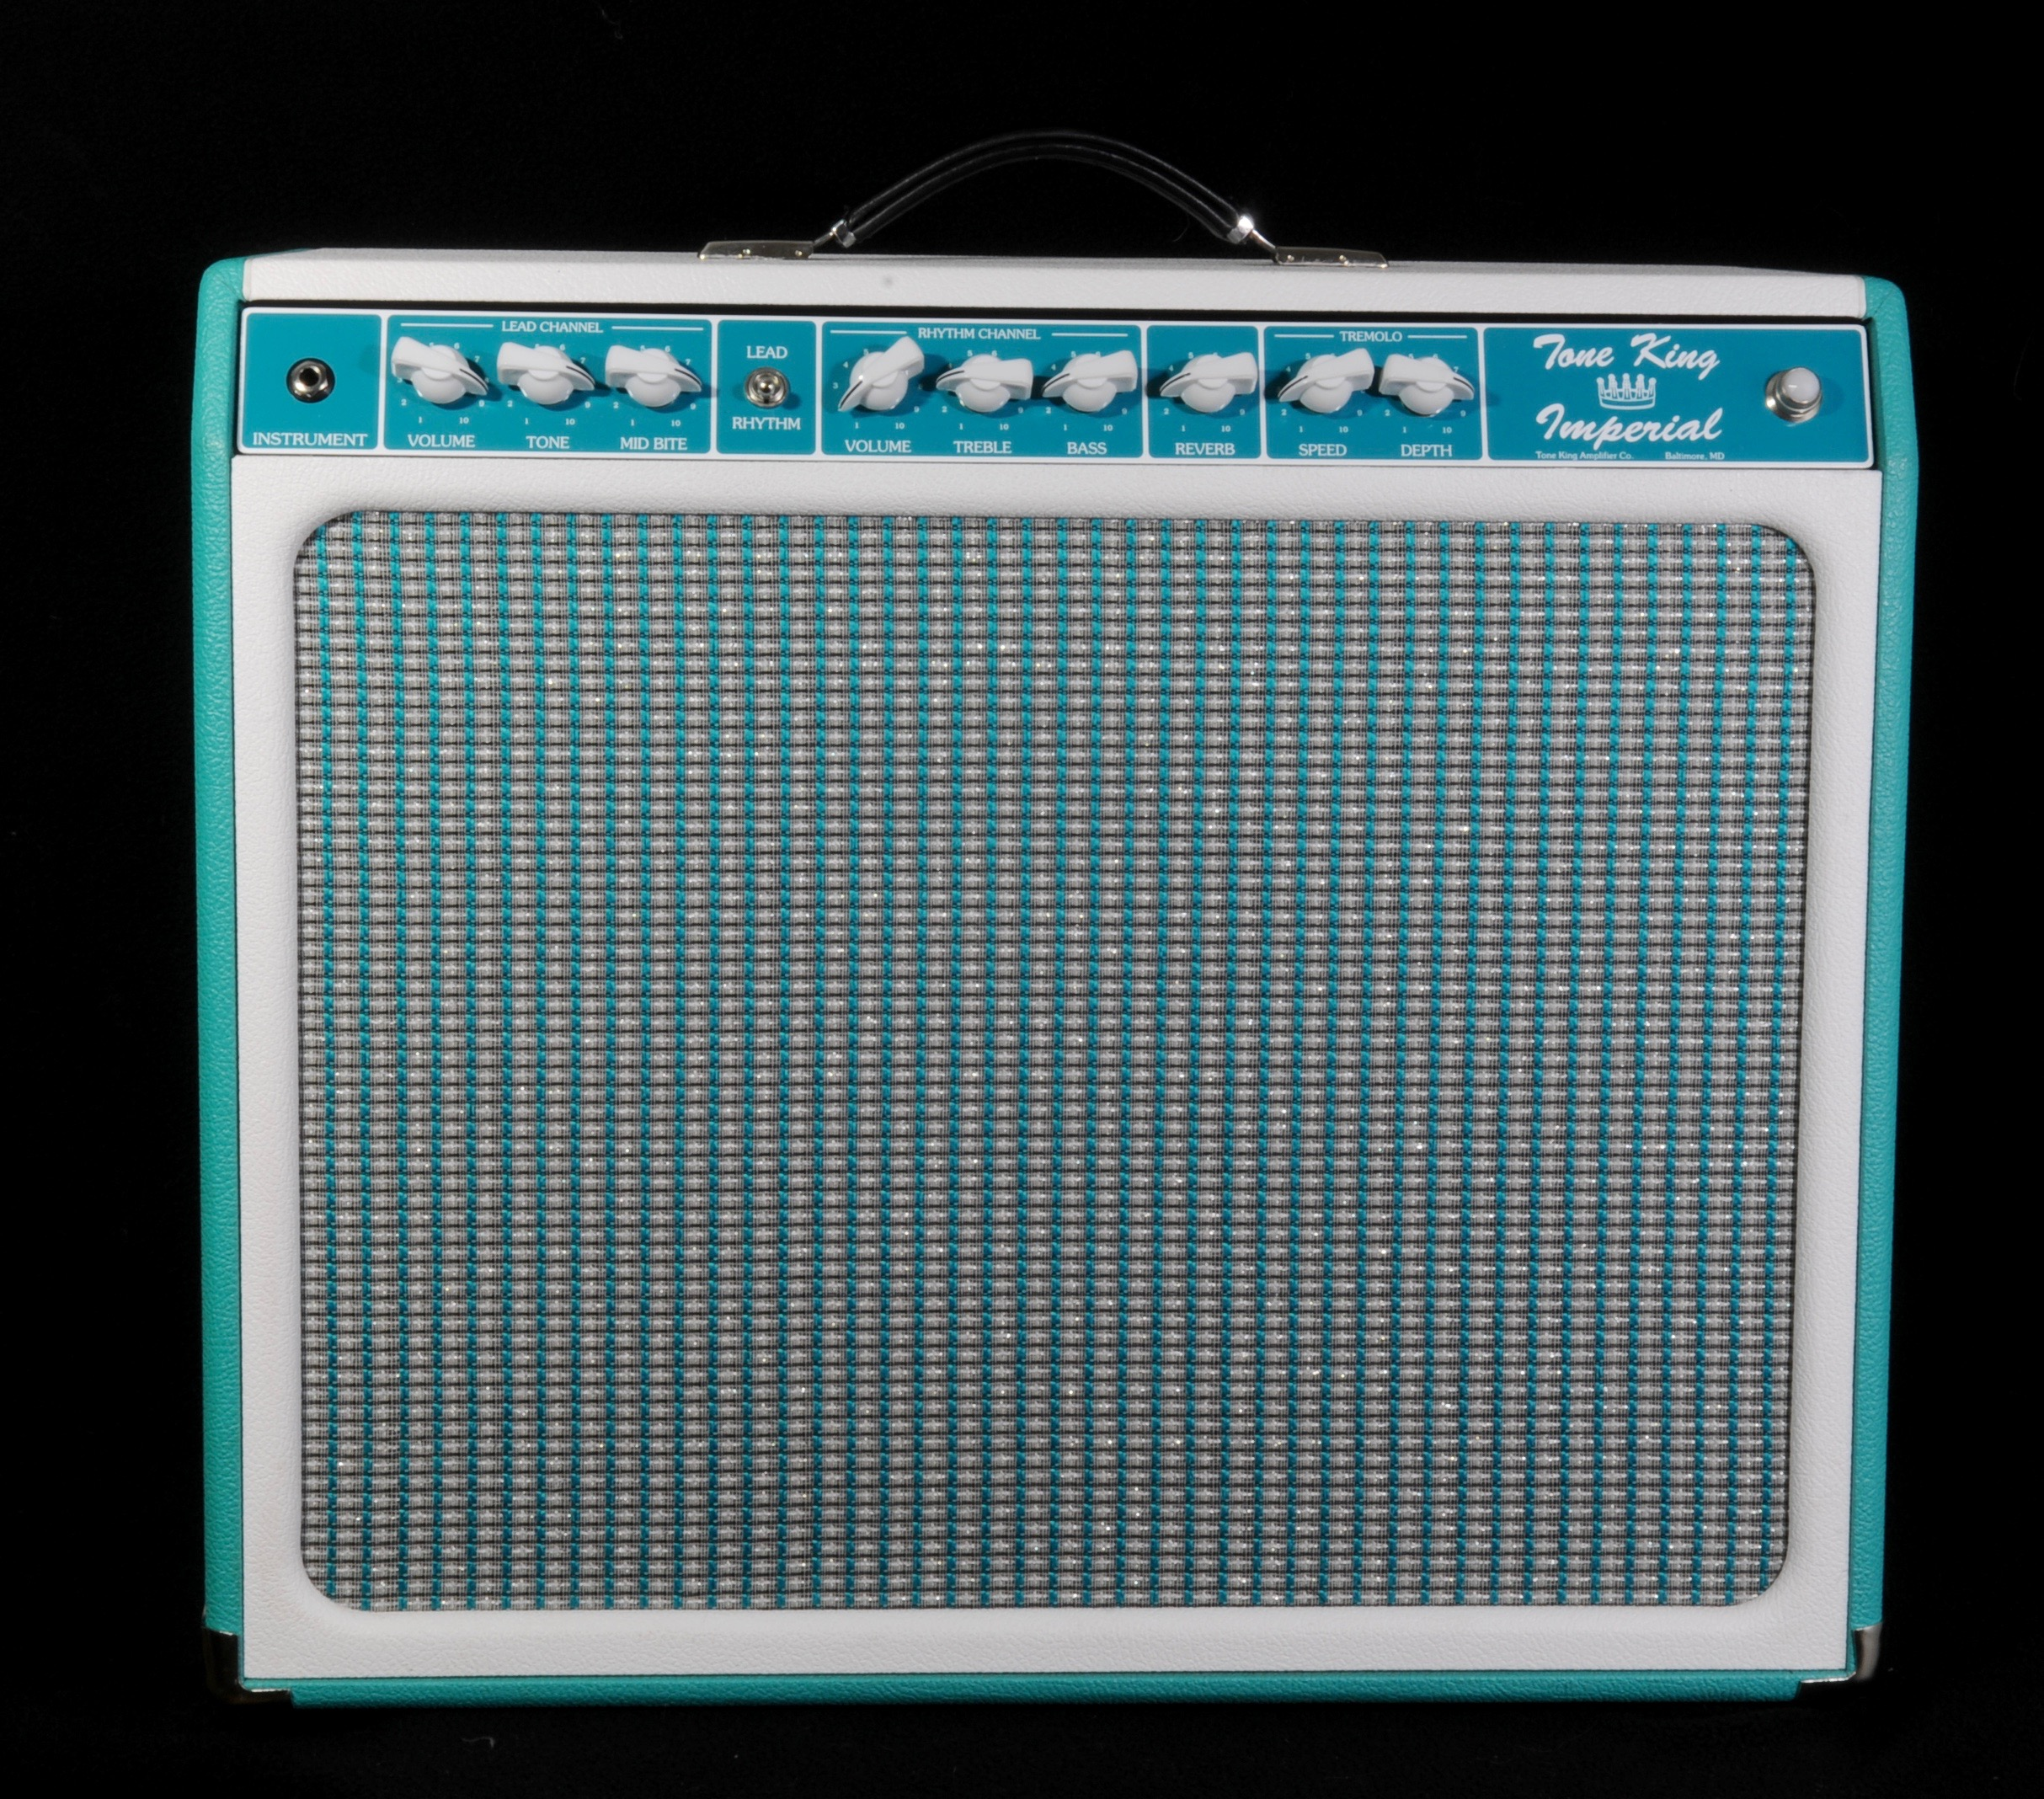 Tone King Imperial Combo MK1